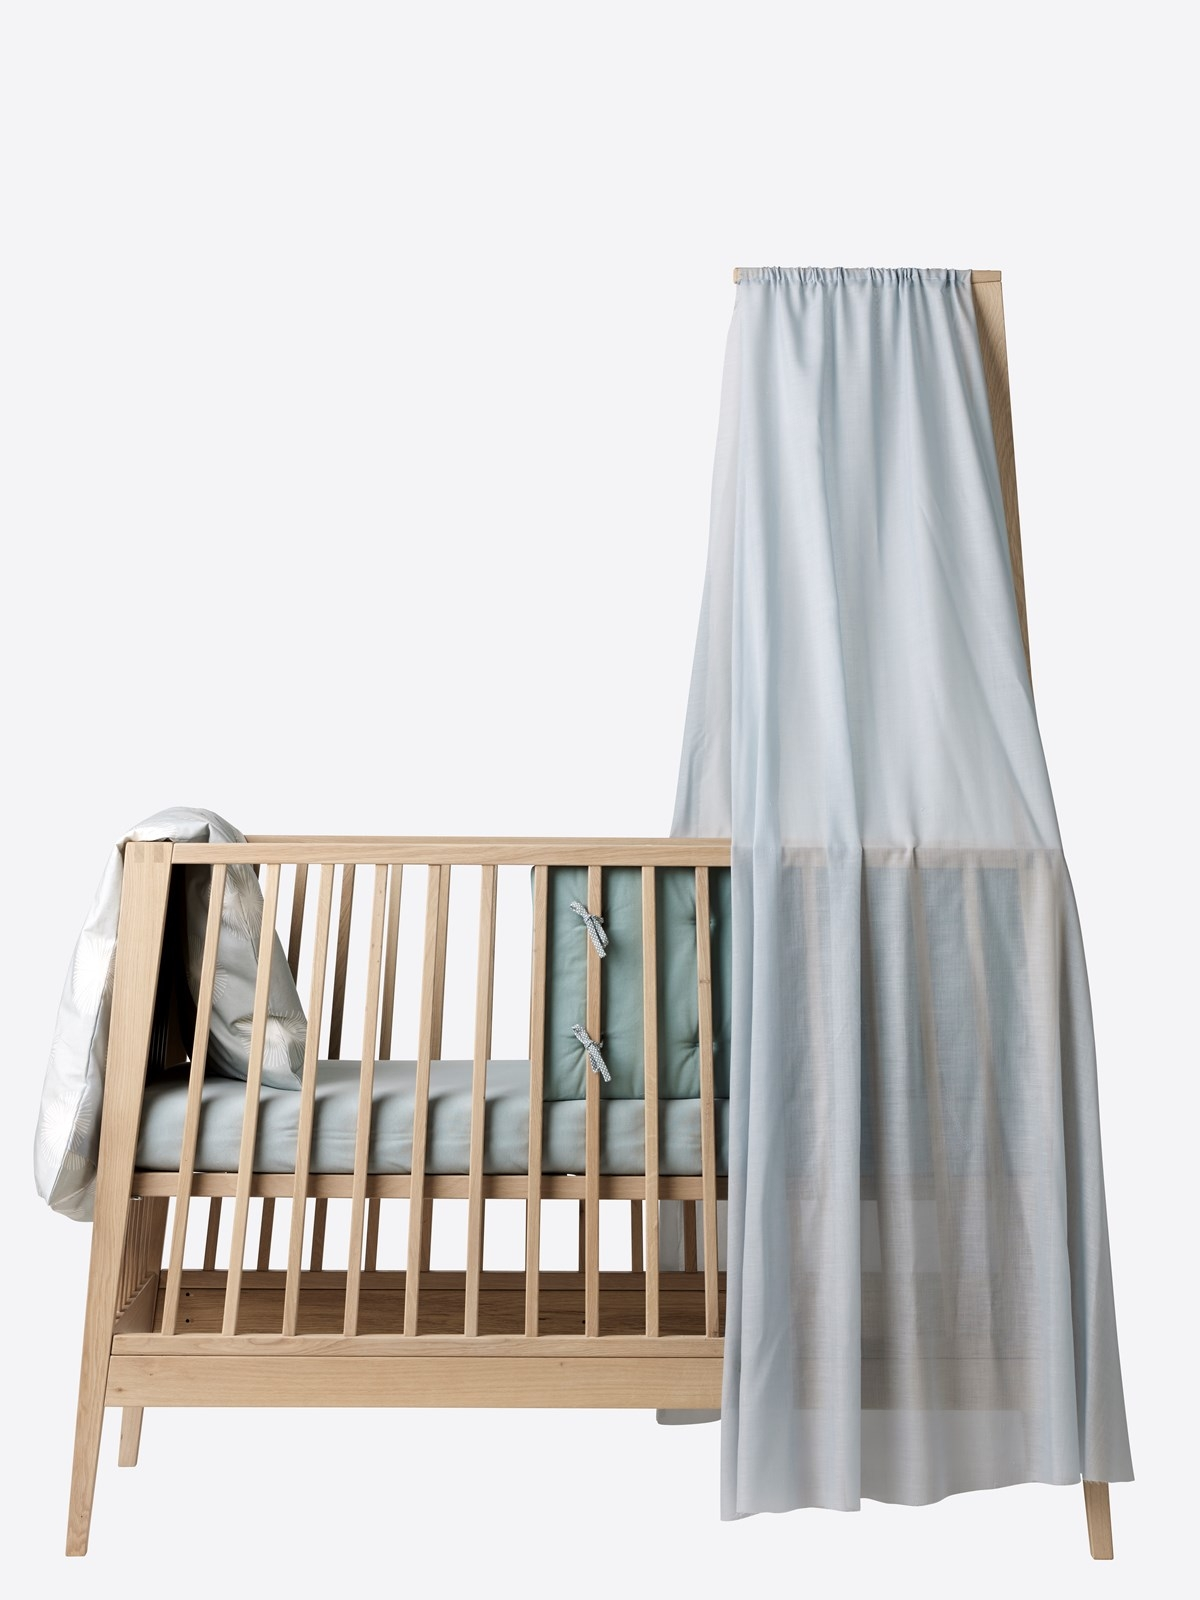 Cradles Cots Kids Love Design # Muebles Kutikai